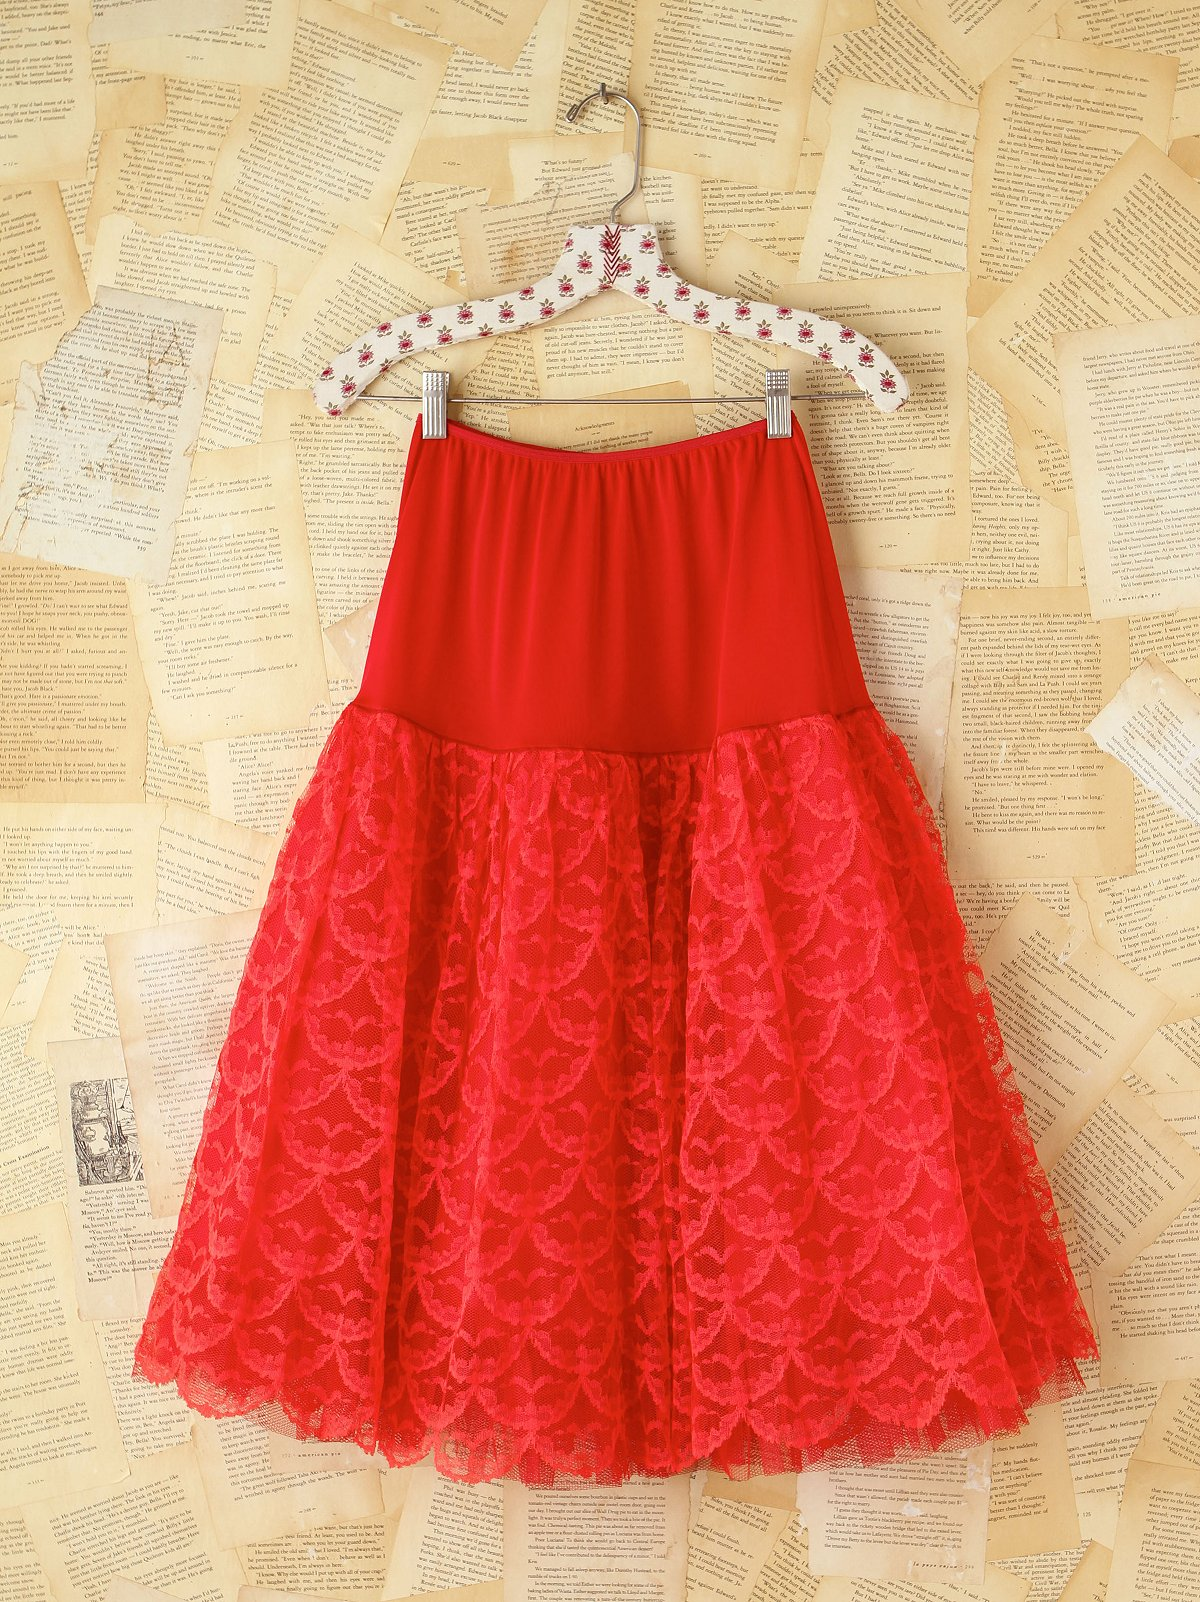 Vintage 1950s Red Lace Skirt